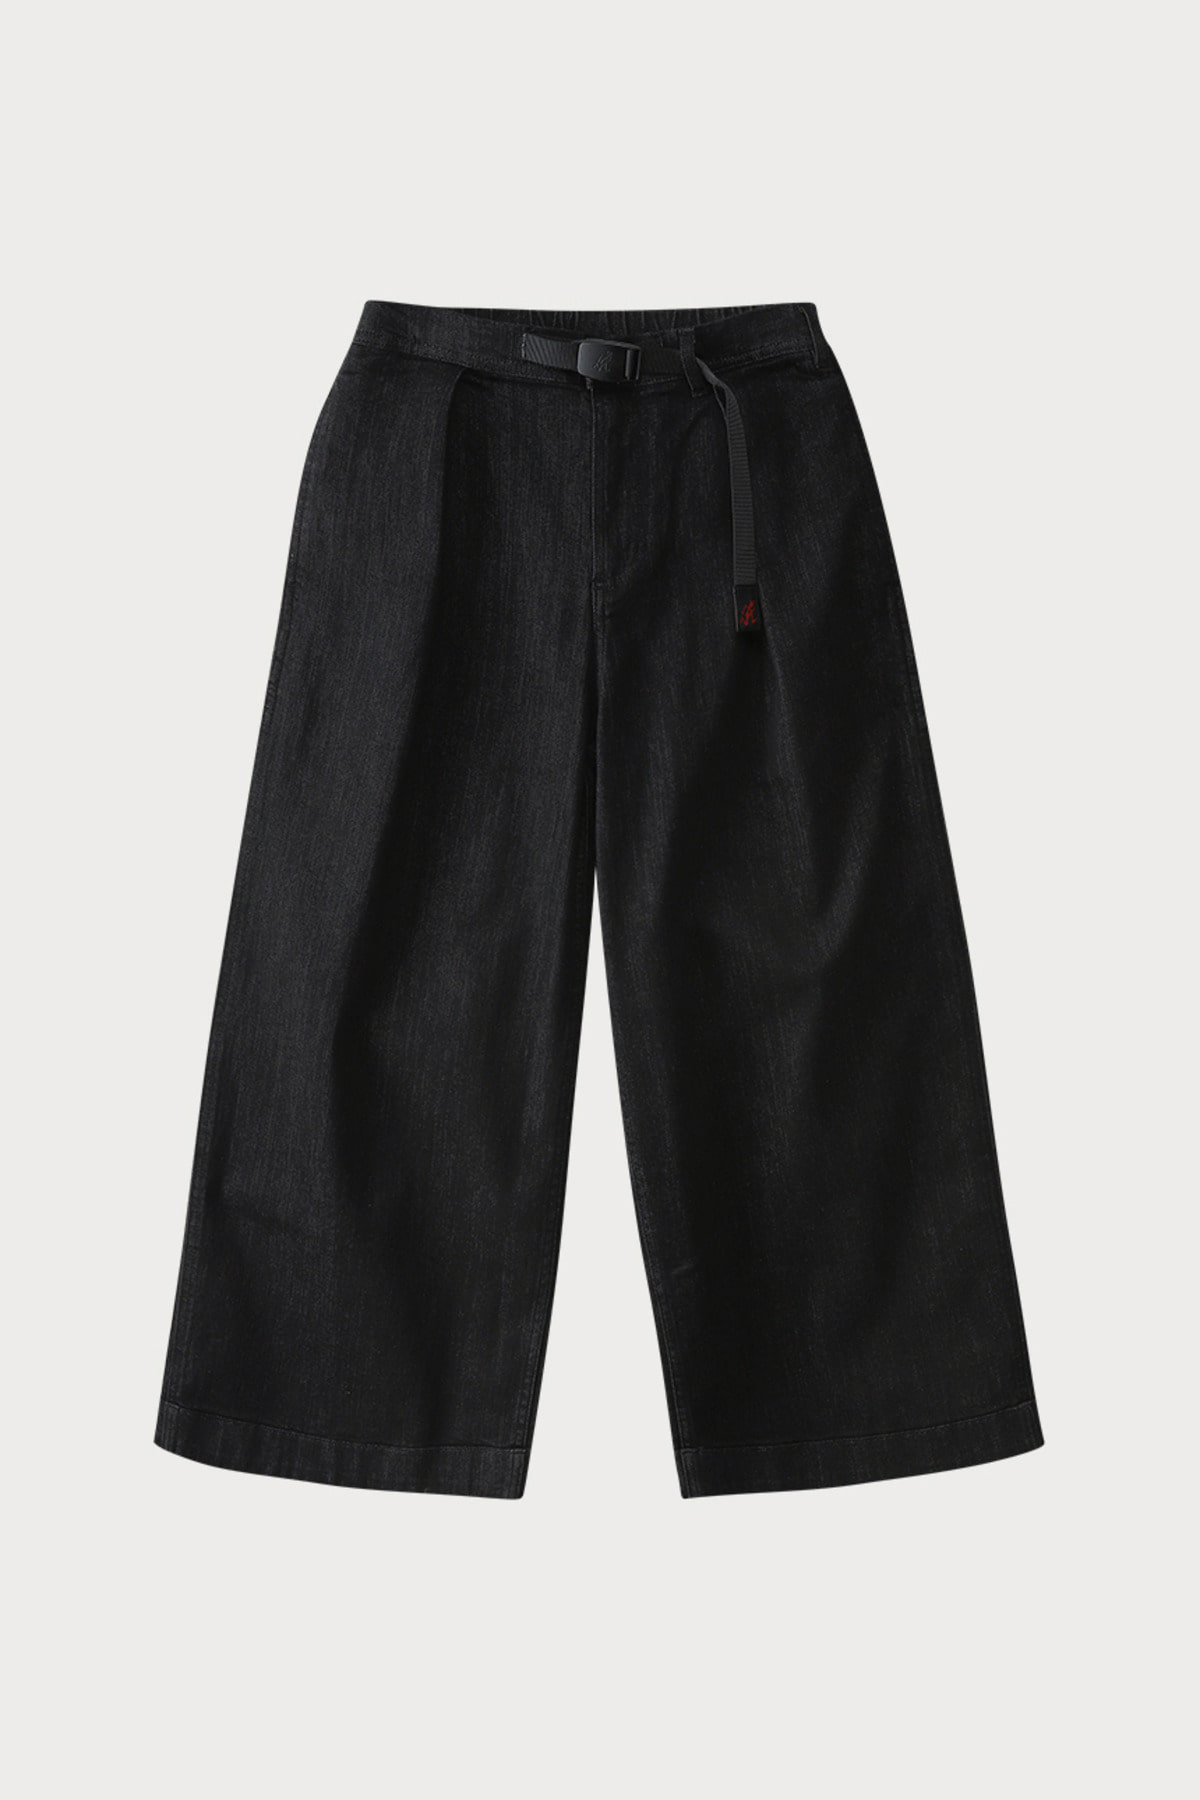 DENIM BAGGY PANTS BLACK ONE WASH